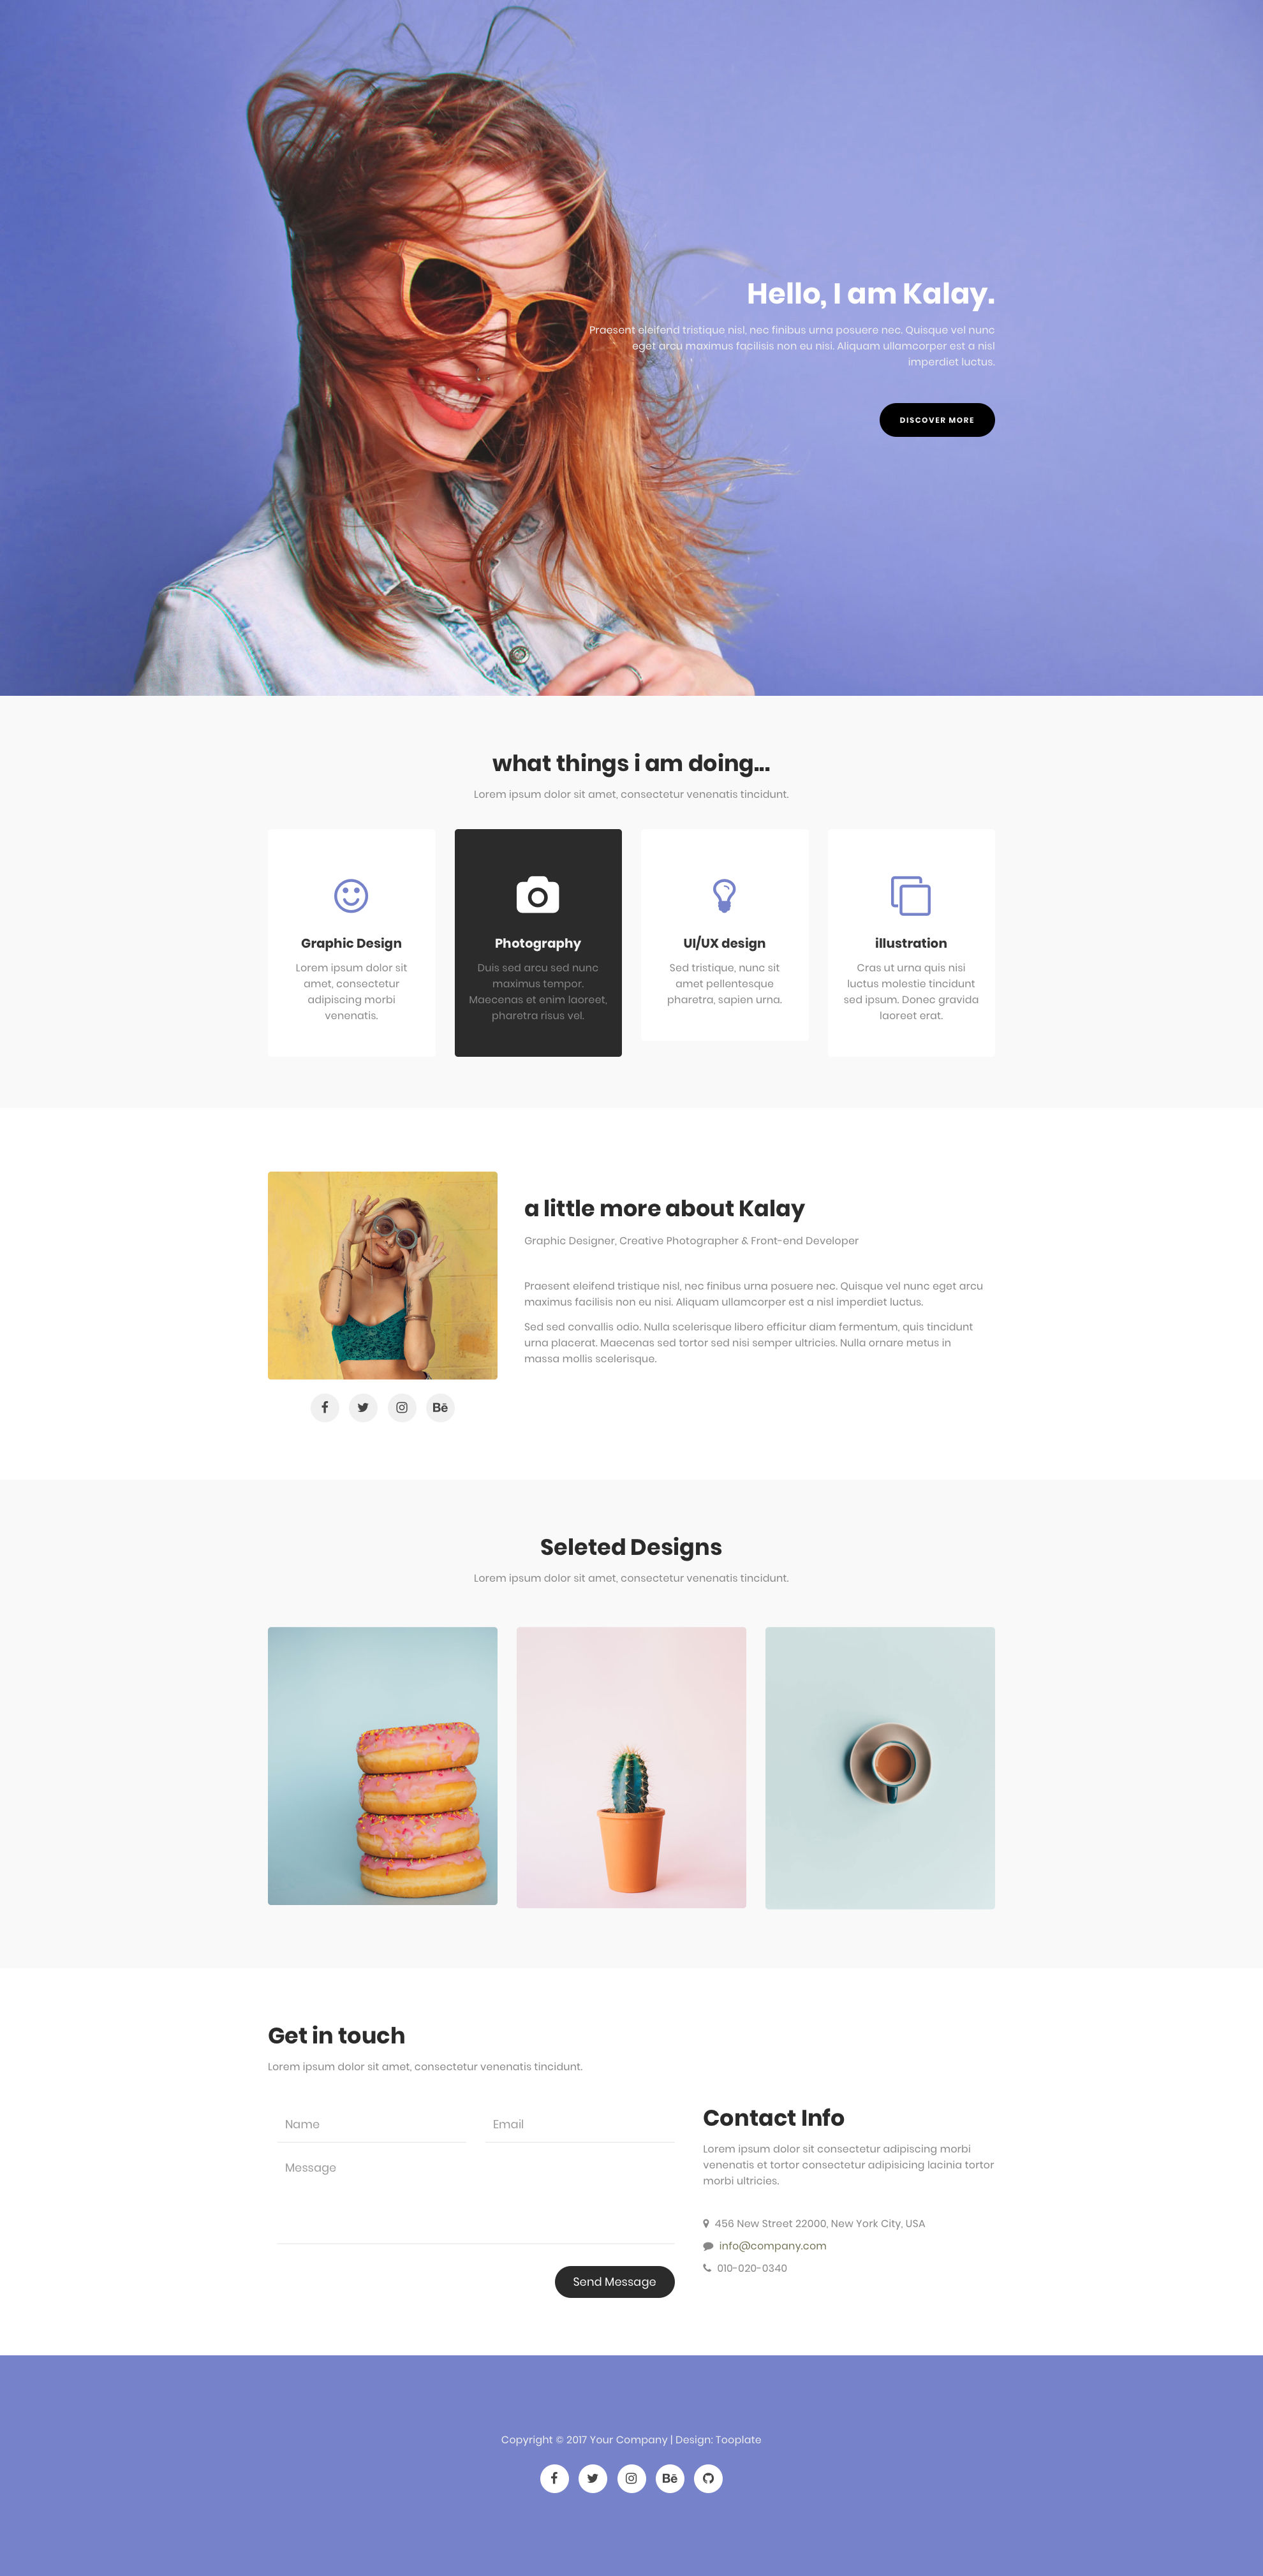 Kalay HTML template is simple and clean responsive HTML5 Bootstrap Portfolio website template. It is the right choice for personal, portfolio or photography websites. Kalay HTML template is based on purple and white colors, fully responsive, retina ready and comes with Bootstrap CSS Grid System.